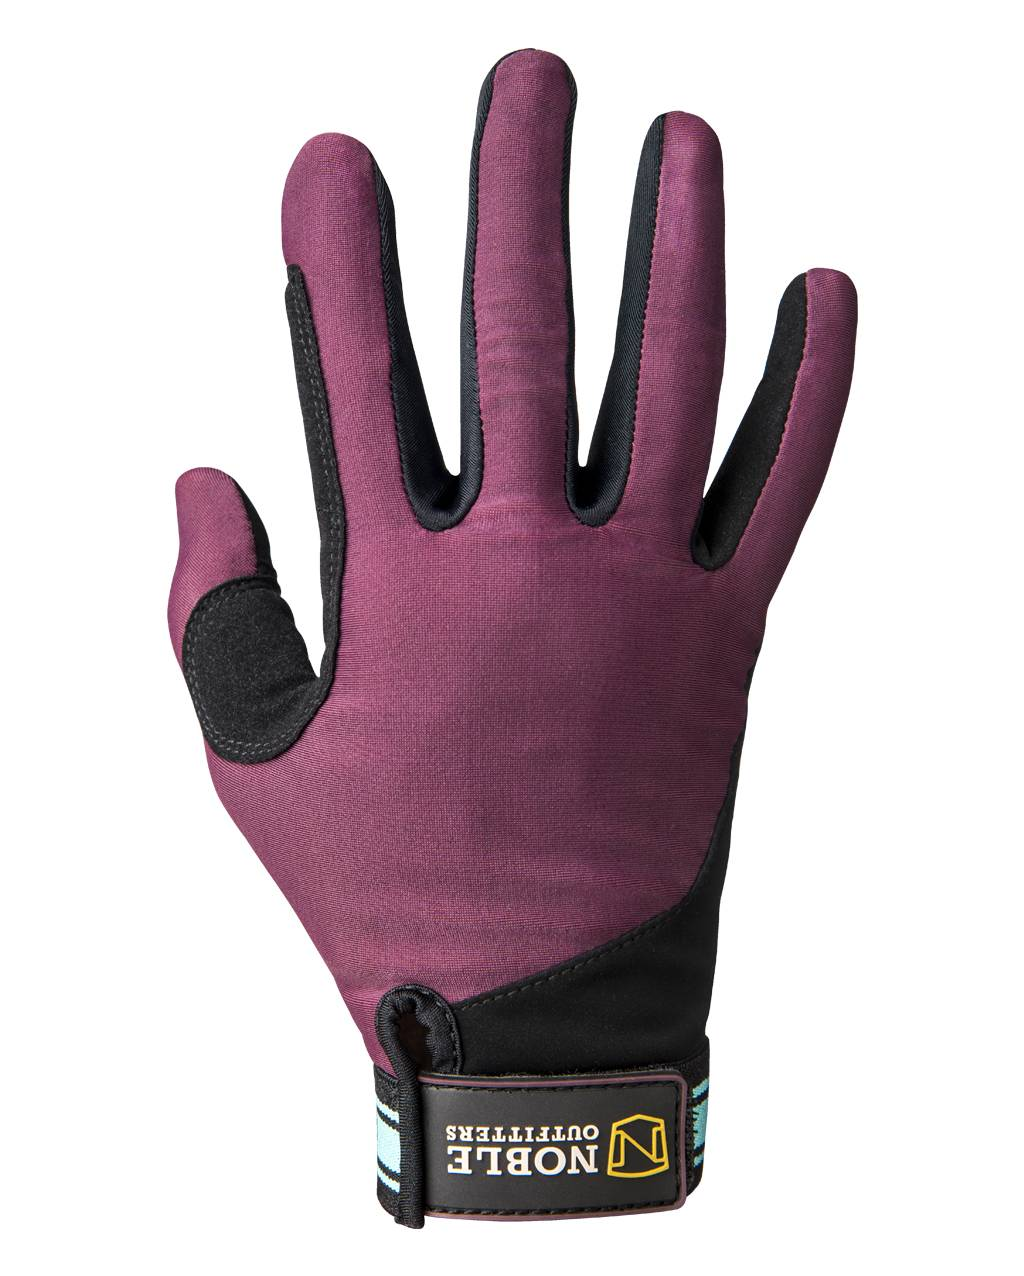 NE Perfect Fit Gloves